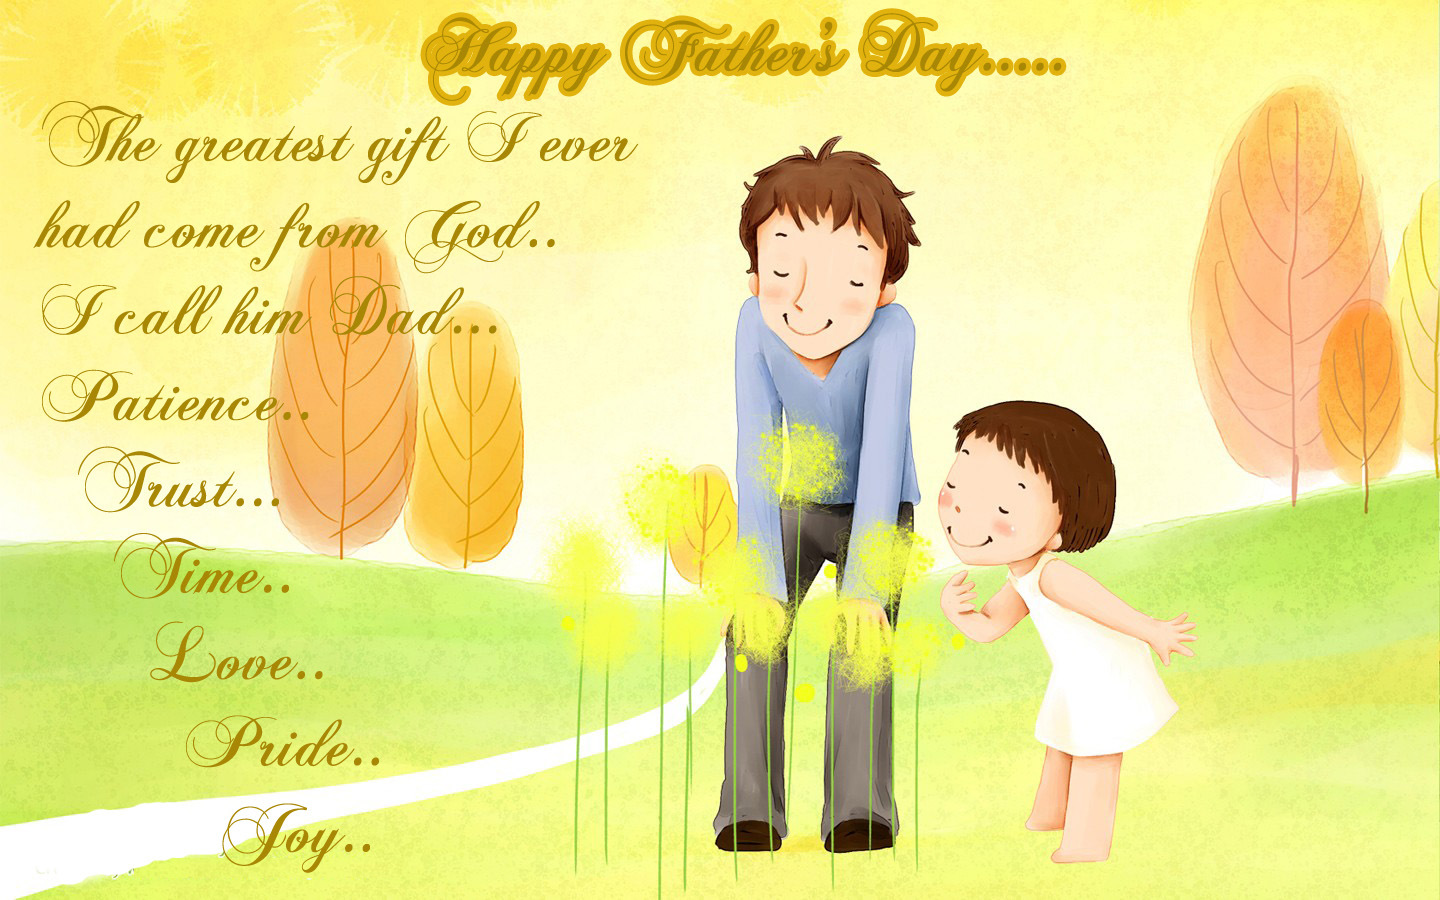 Fathers Day 2015 Quotes, Wishes, Greetings, SMS, Messages ...